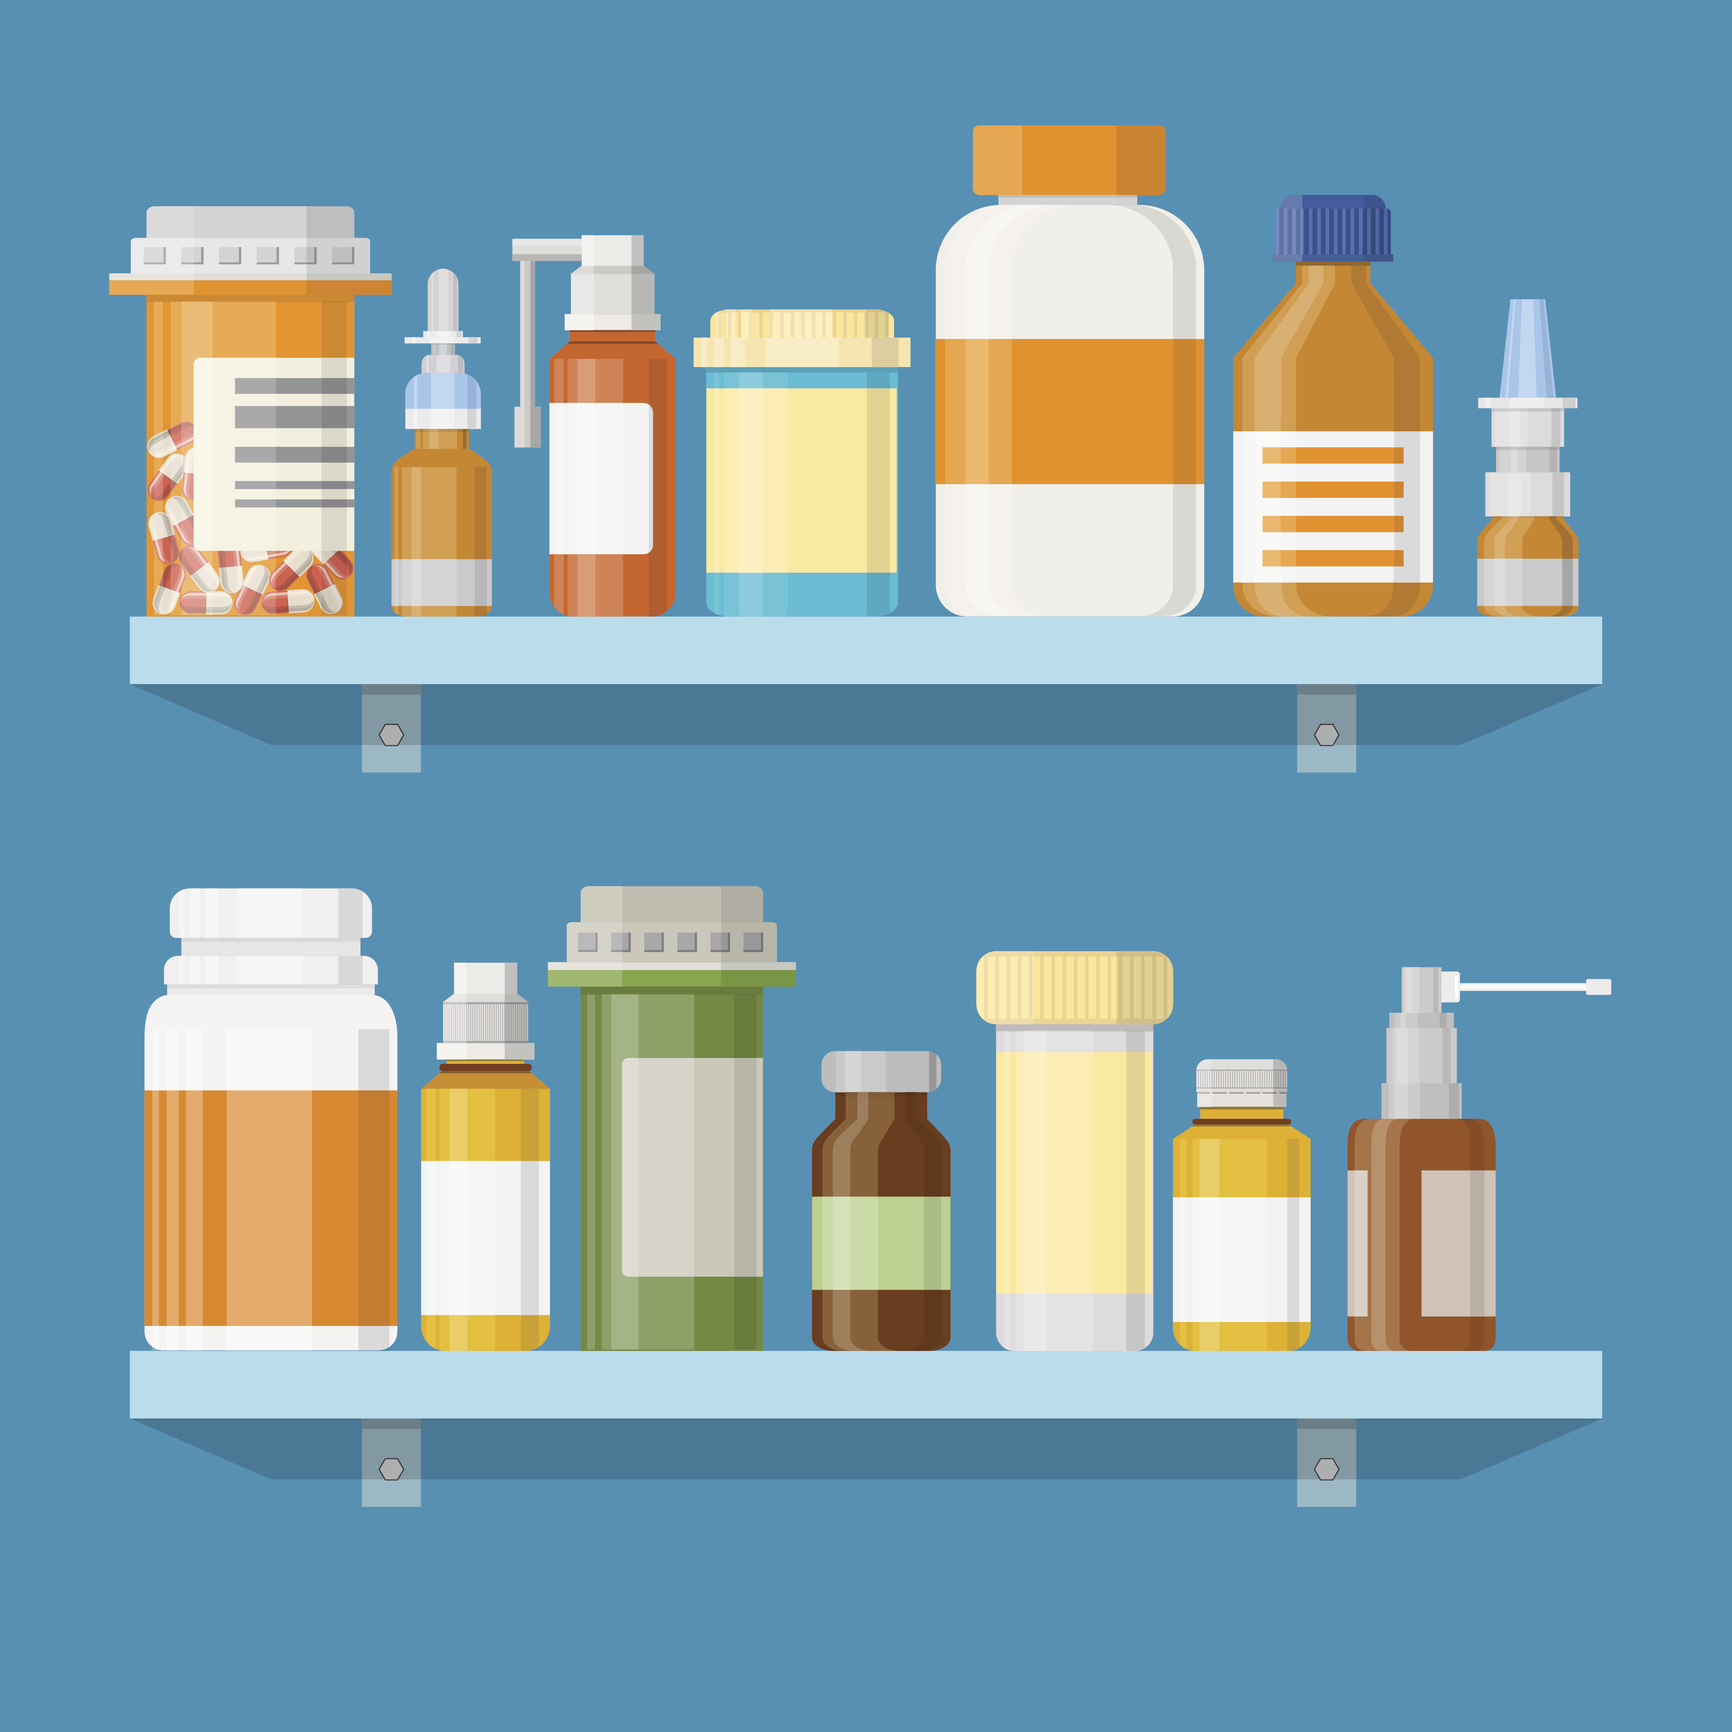 How Do I Properly Store My Medications?